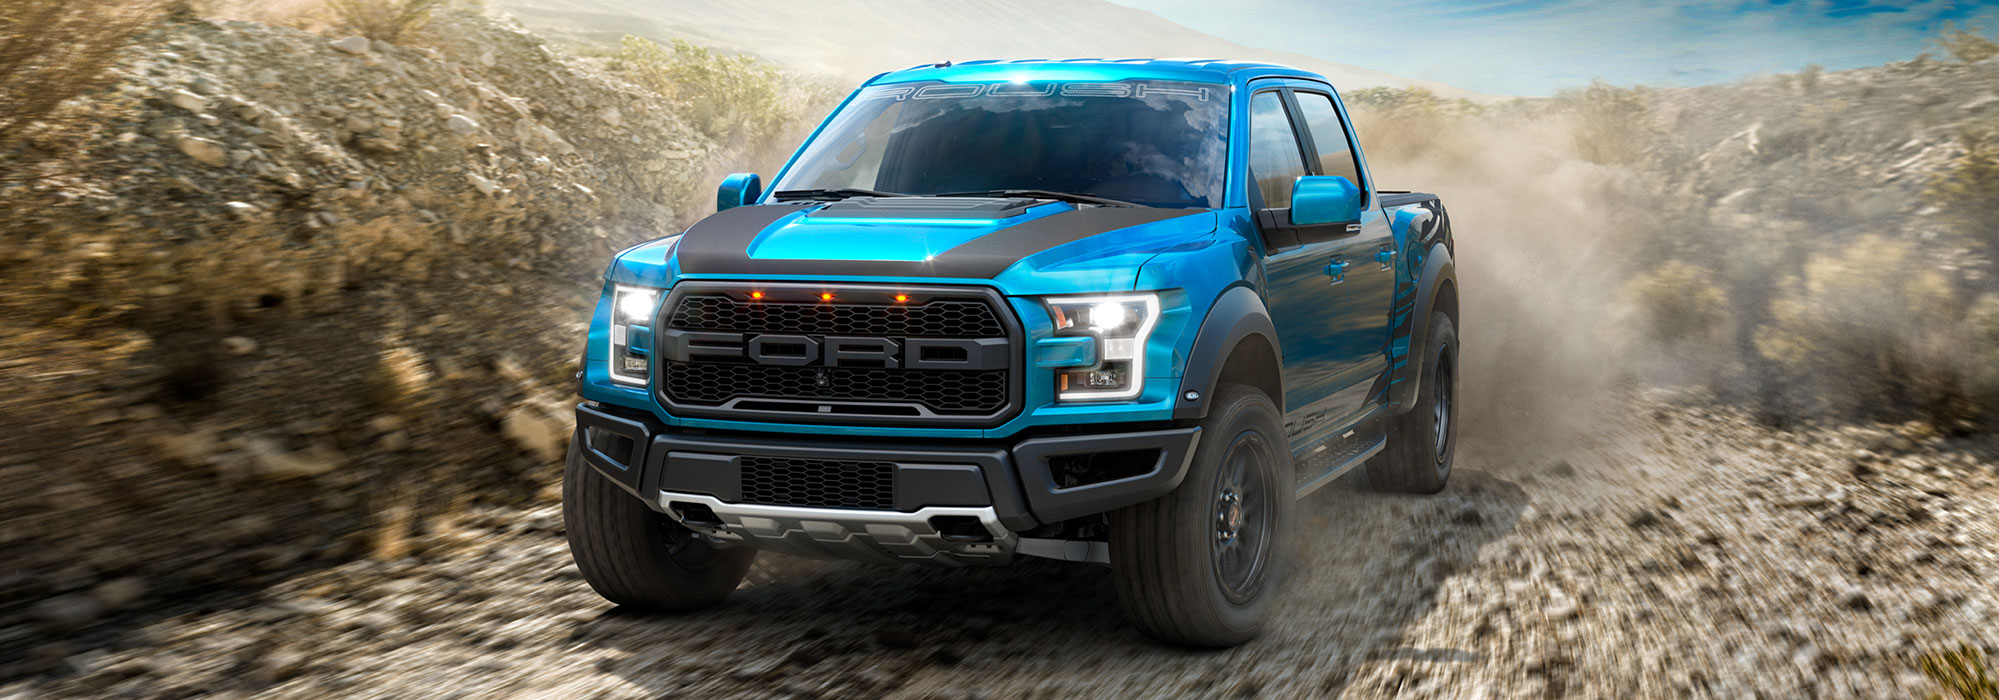 blue ford ROUSH f150 raptor sport truck in sayville ny